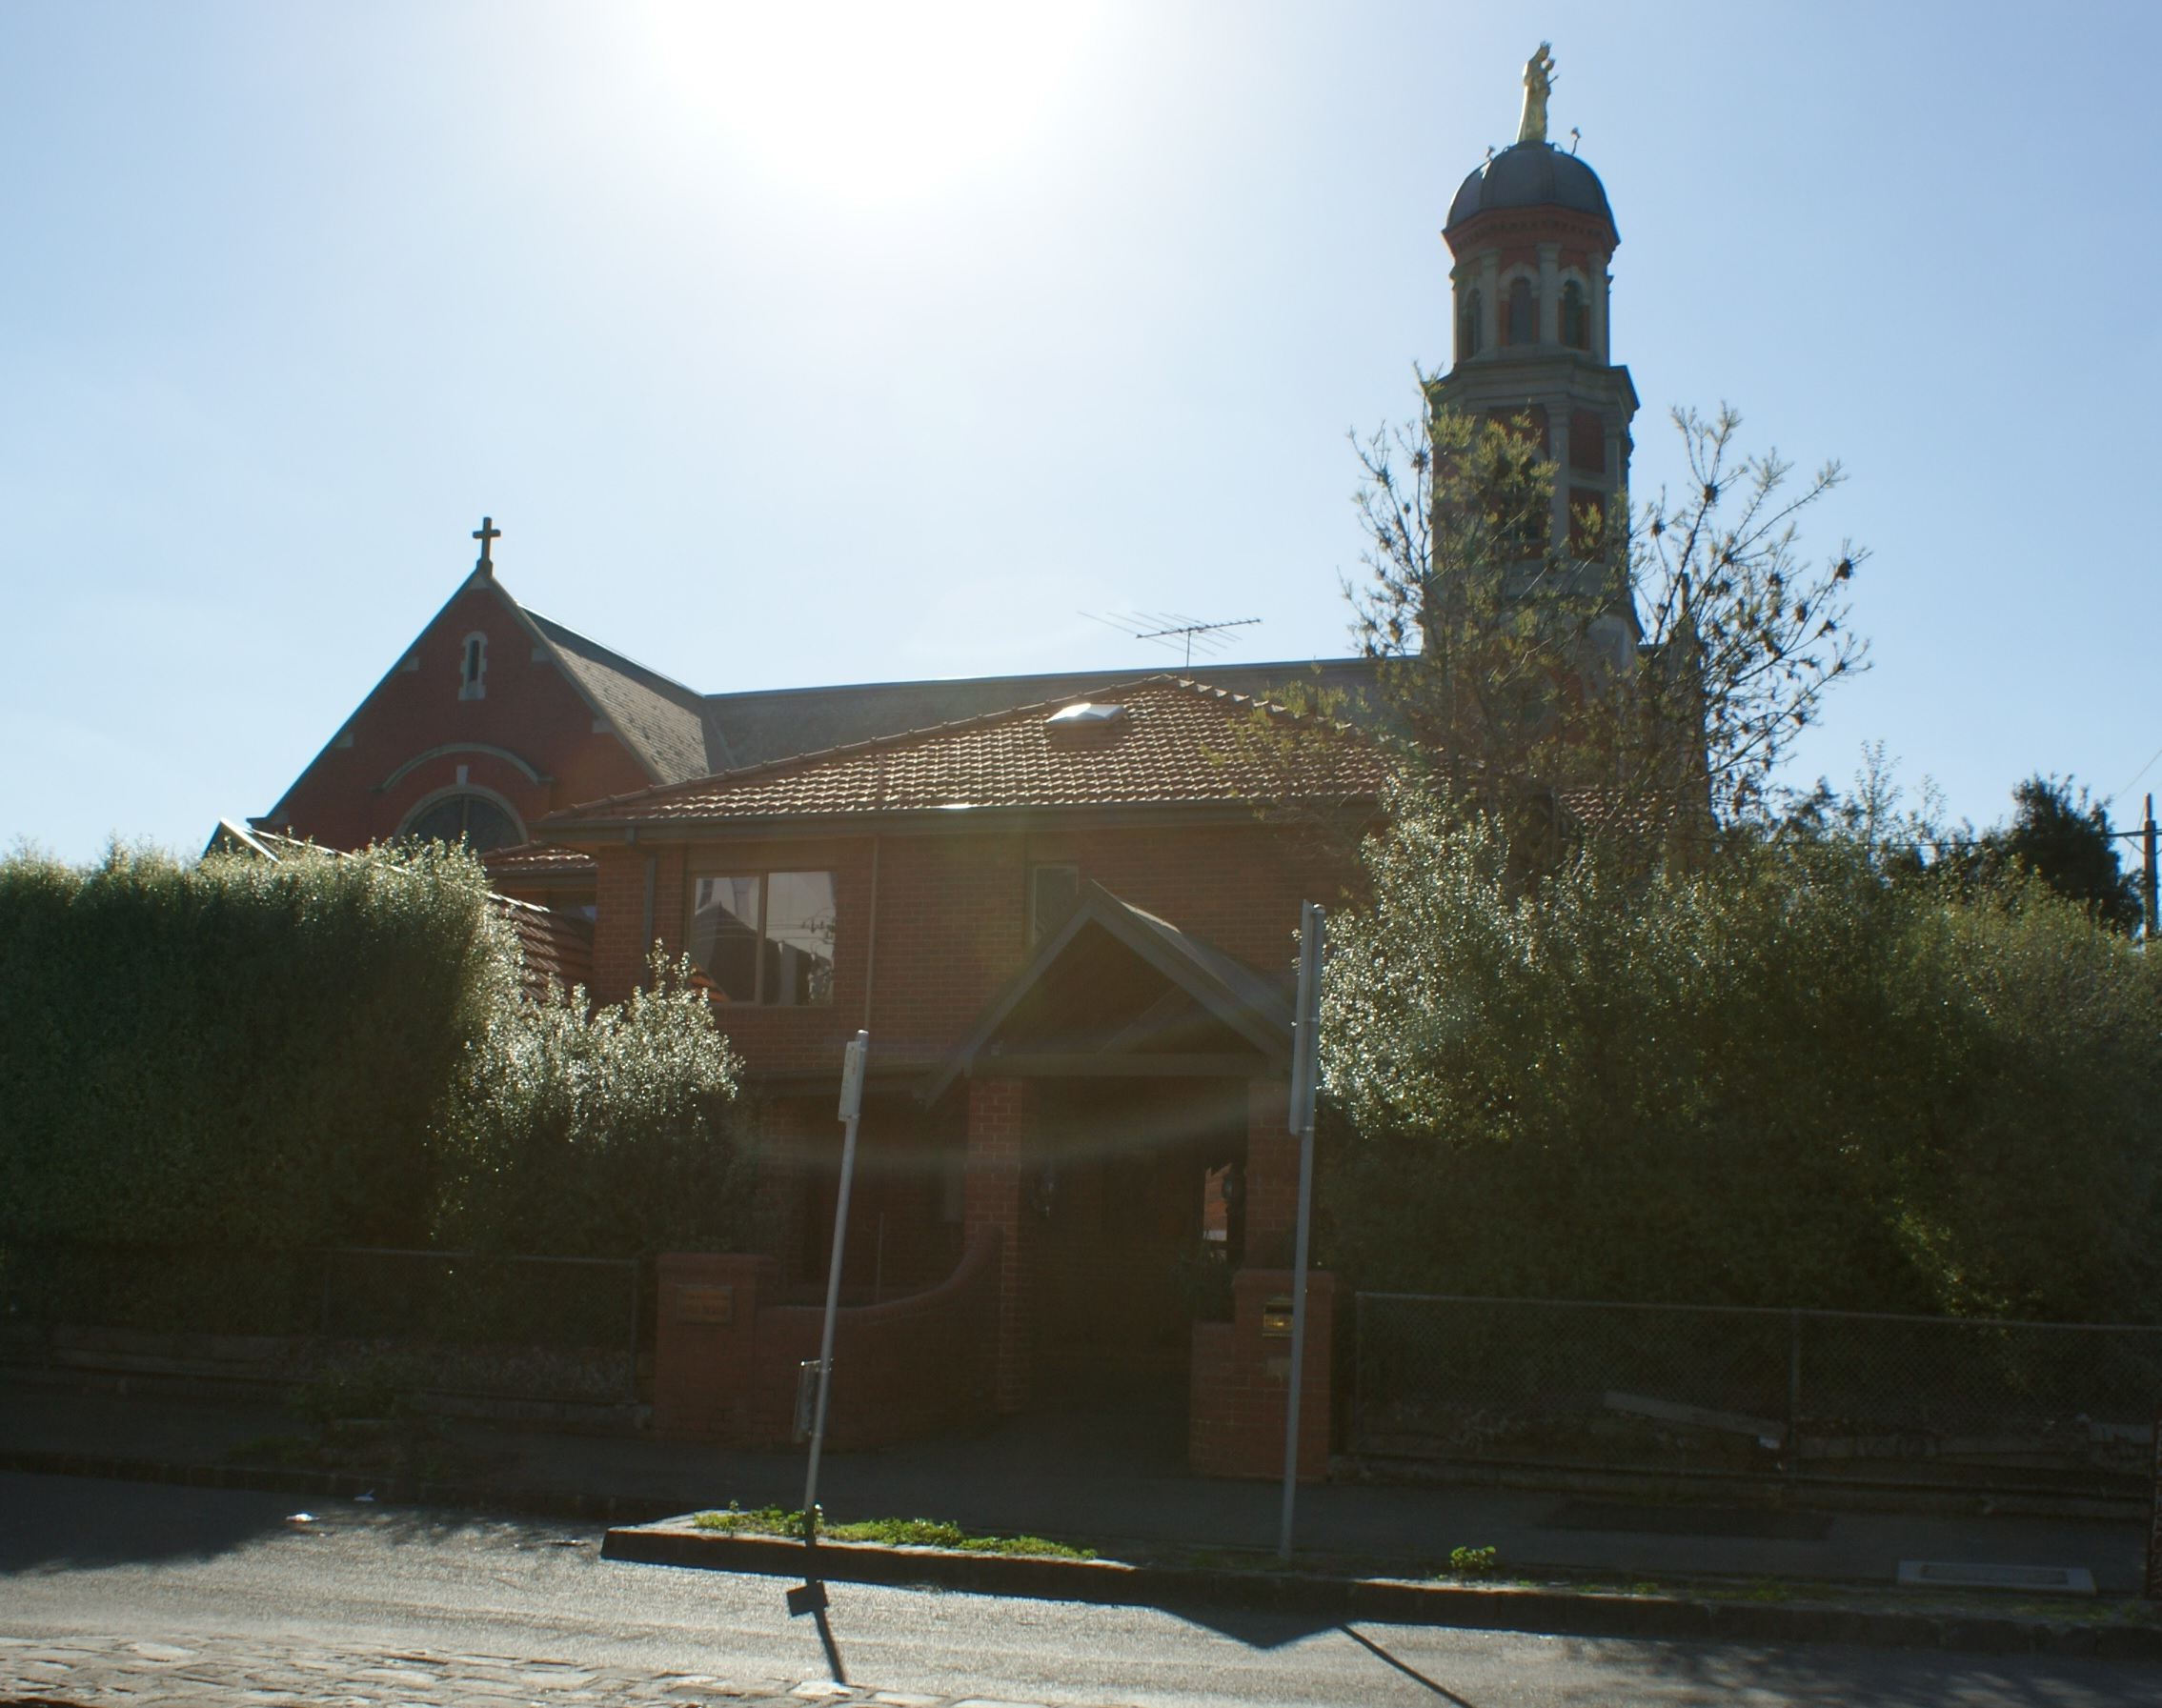 OUR LADY'S PARISH HOUSE   Located next to the church, the Parish House not only provides accommodation for people at various times but is also used for parish meetings. It also offers accommodation for asylum seekers.